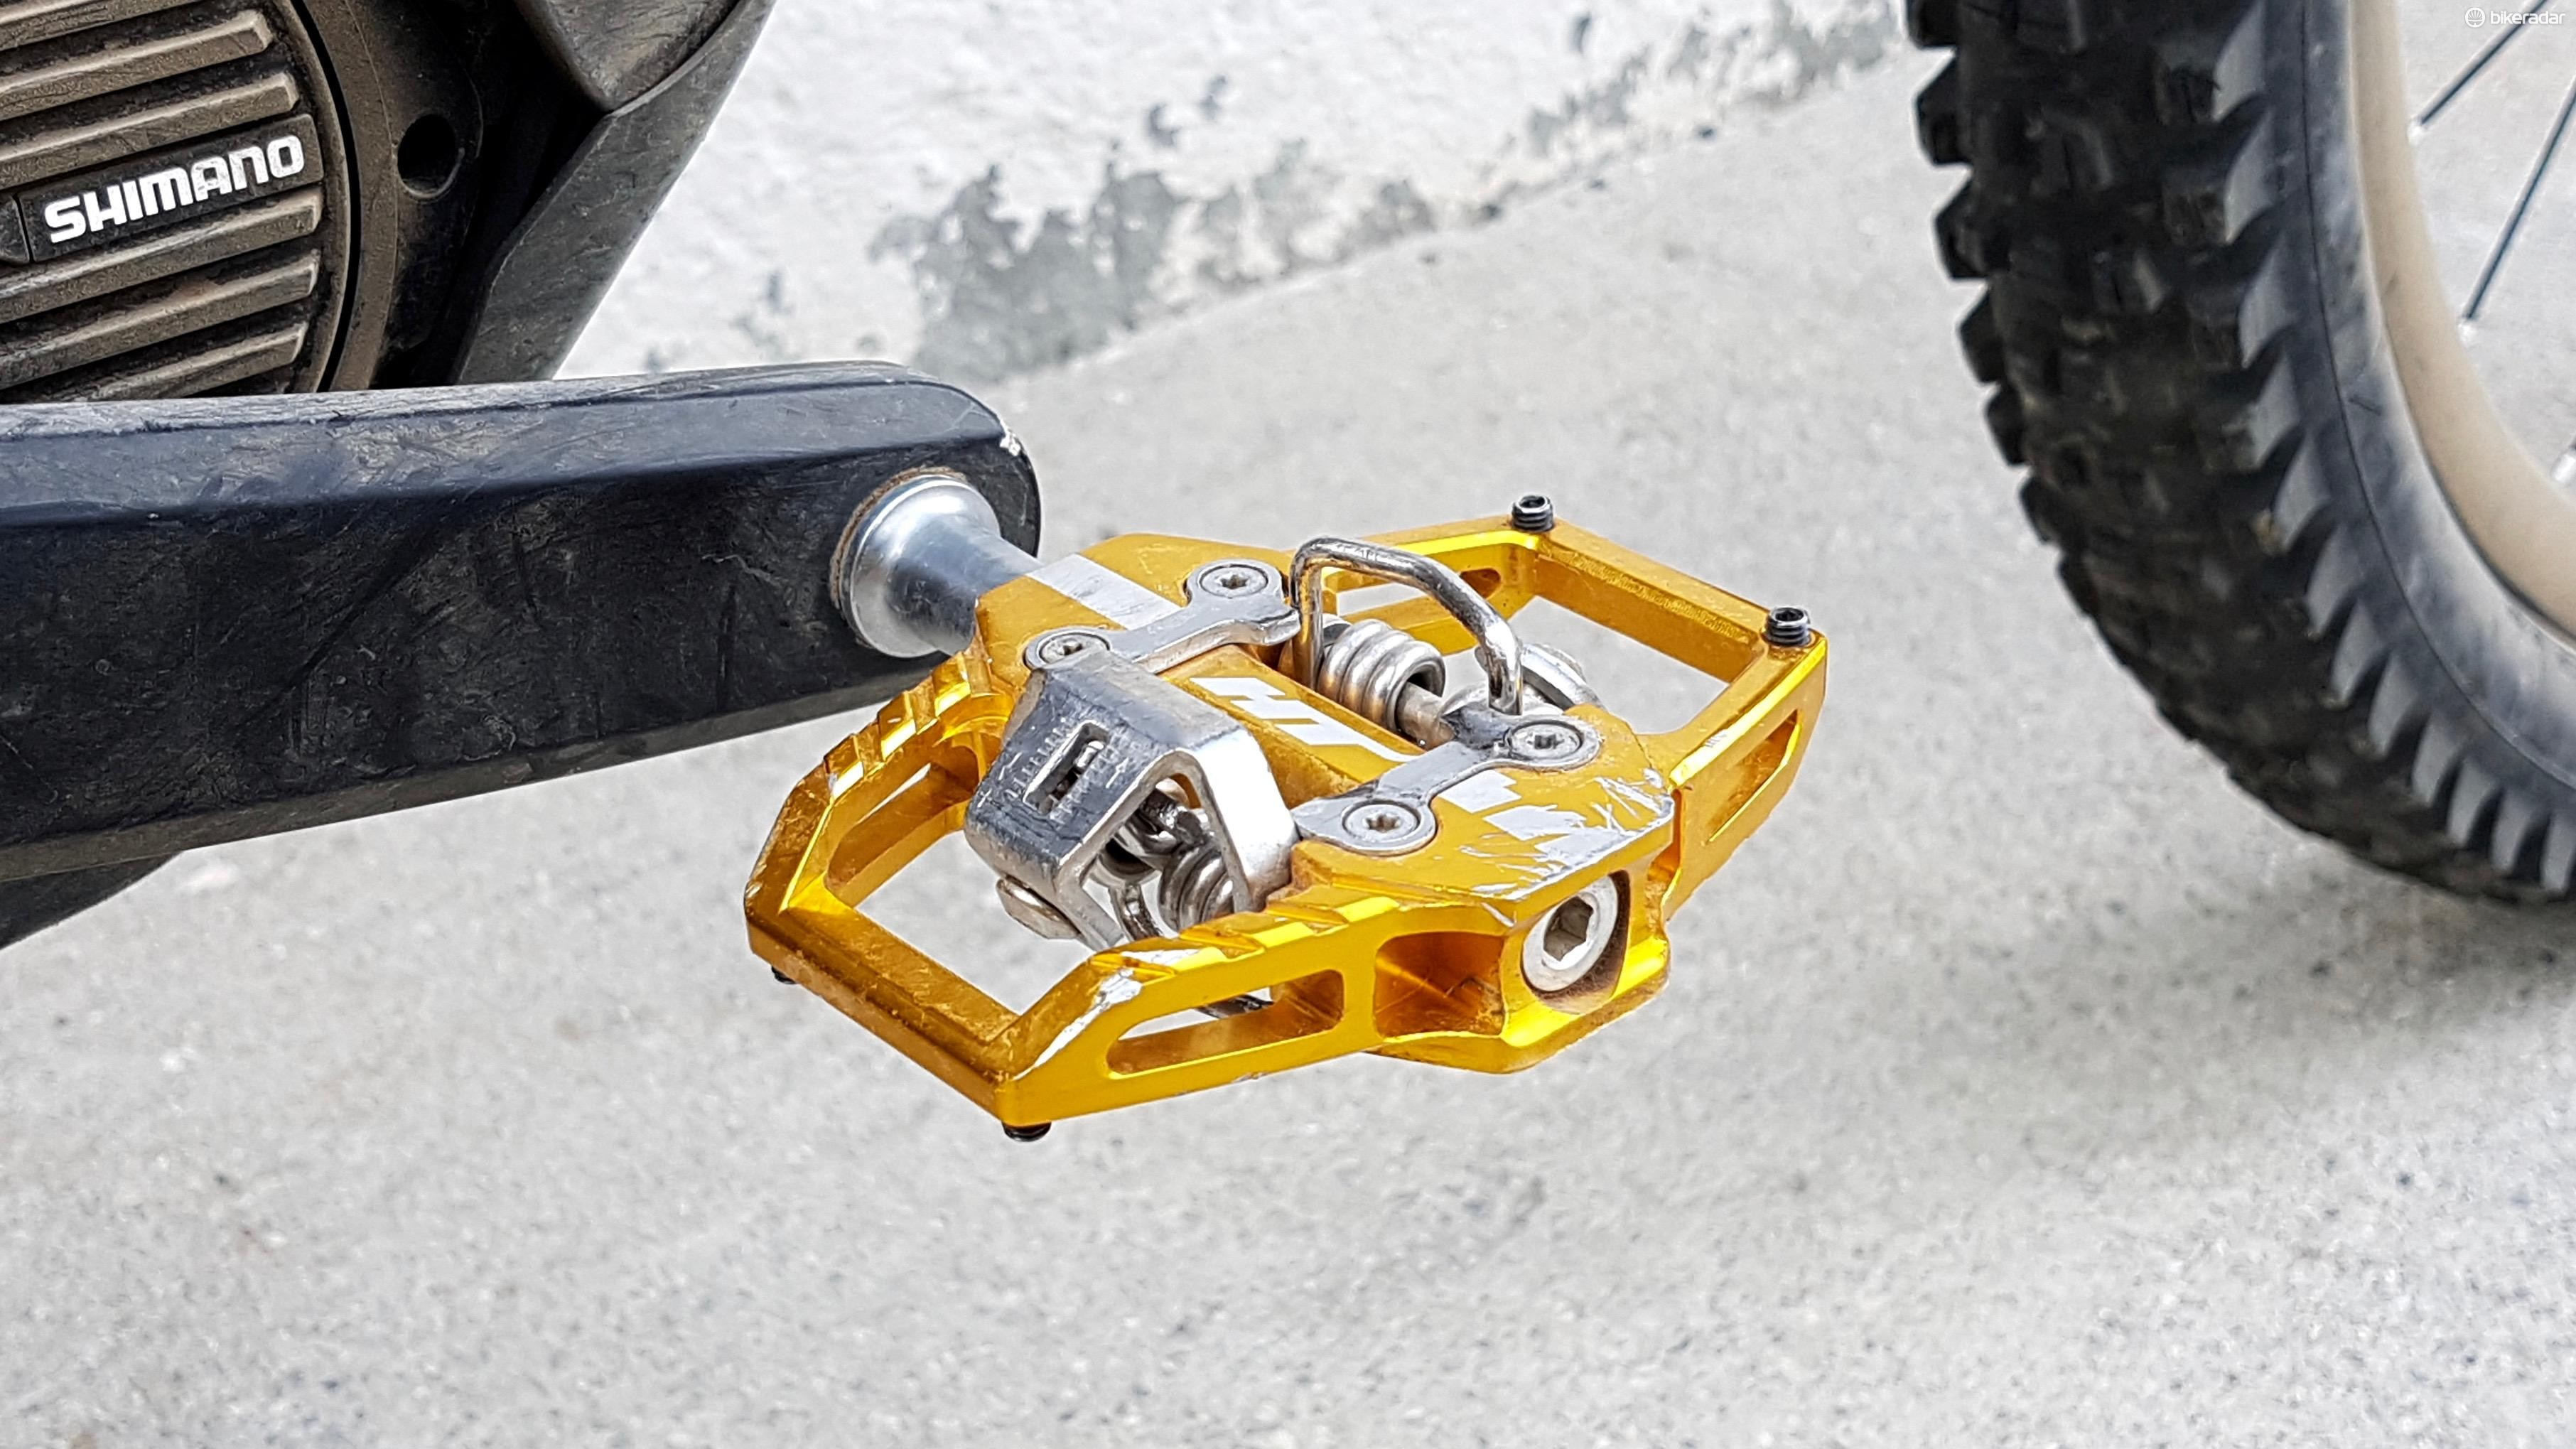 HT T1 pedals are Nico's preferred option, feeling somewhere between Shimano and Crank Bros